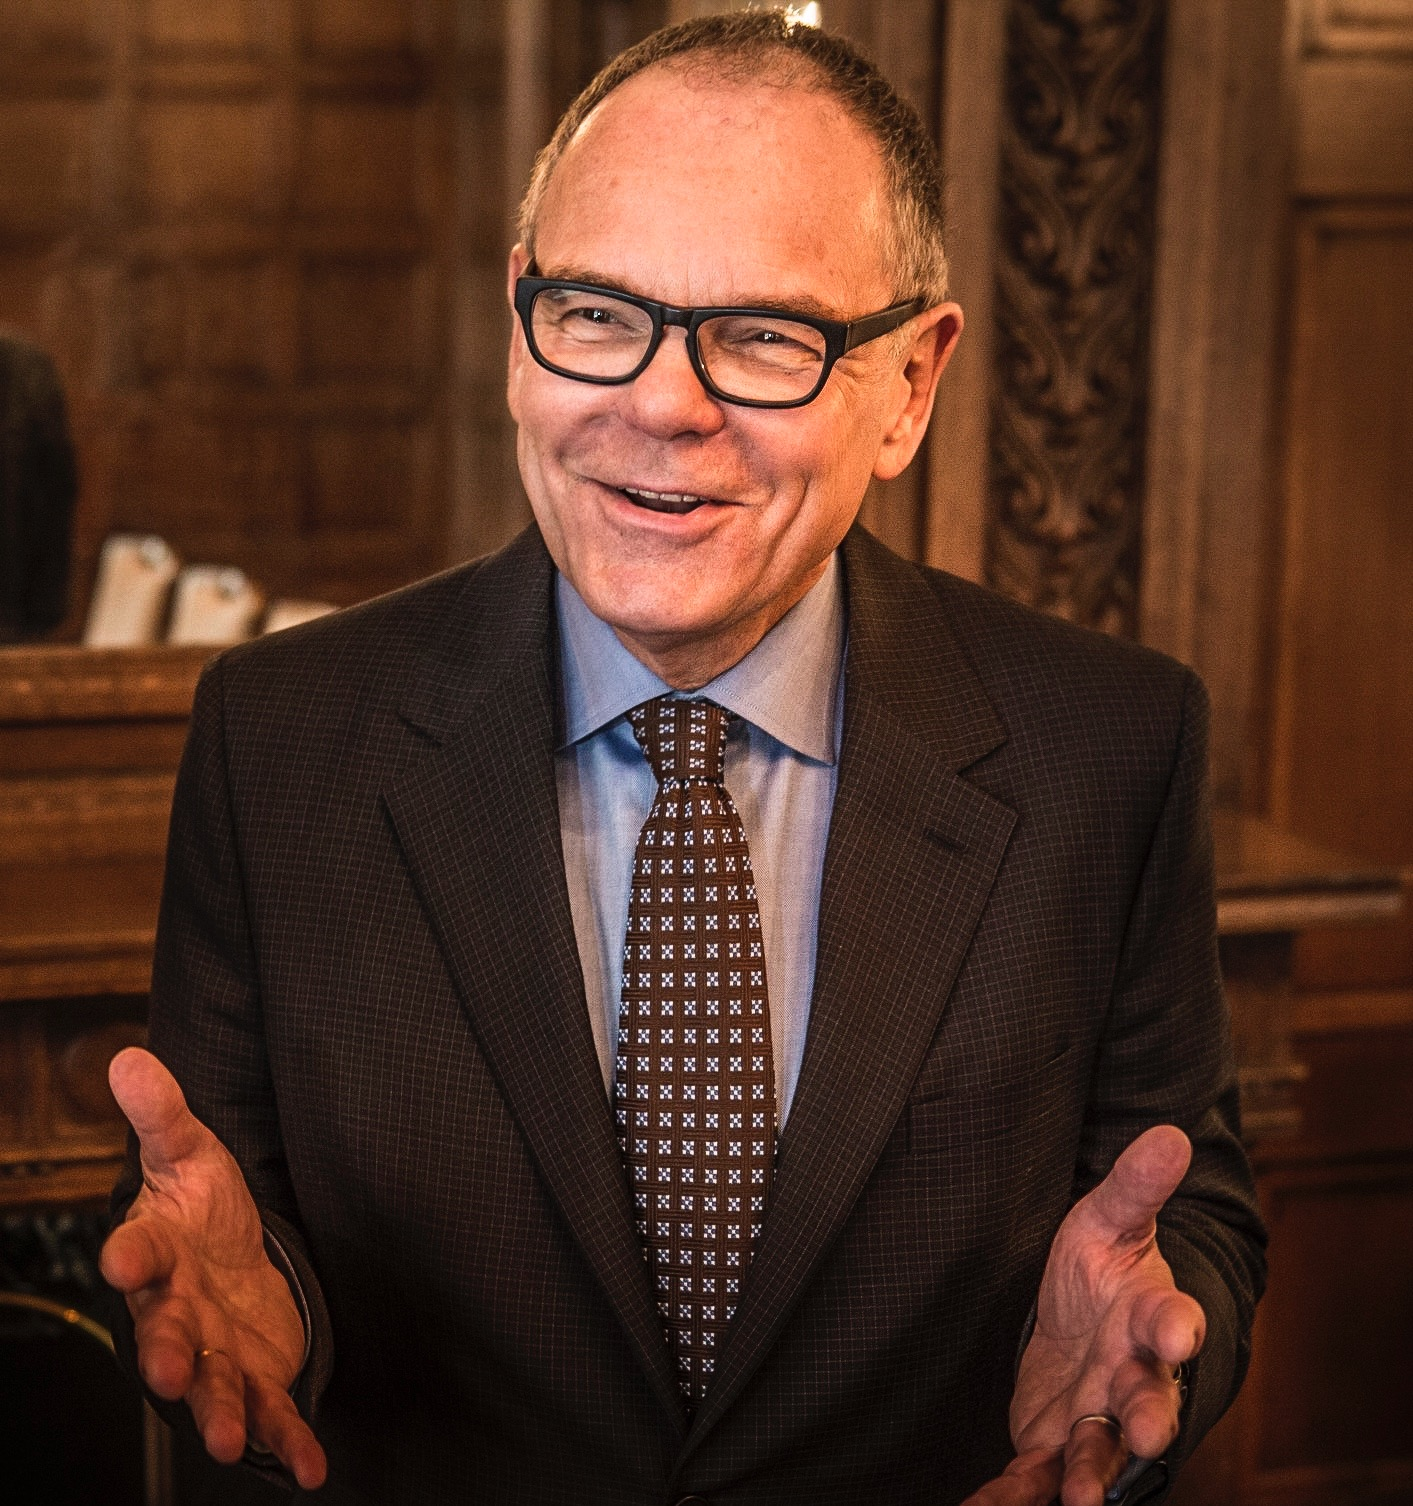 Don Tapscott, CEO, The Tapscott Group